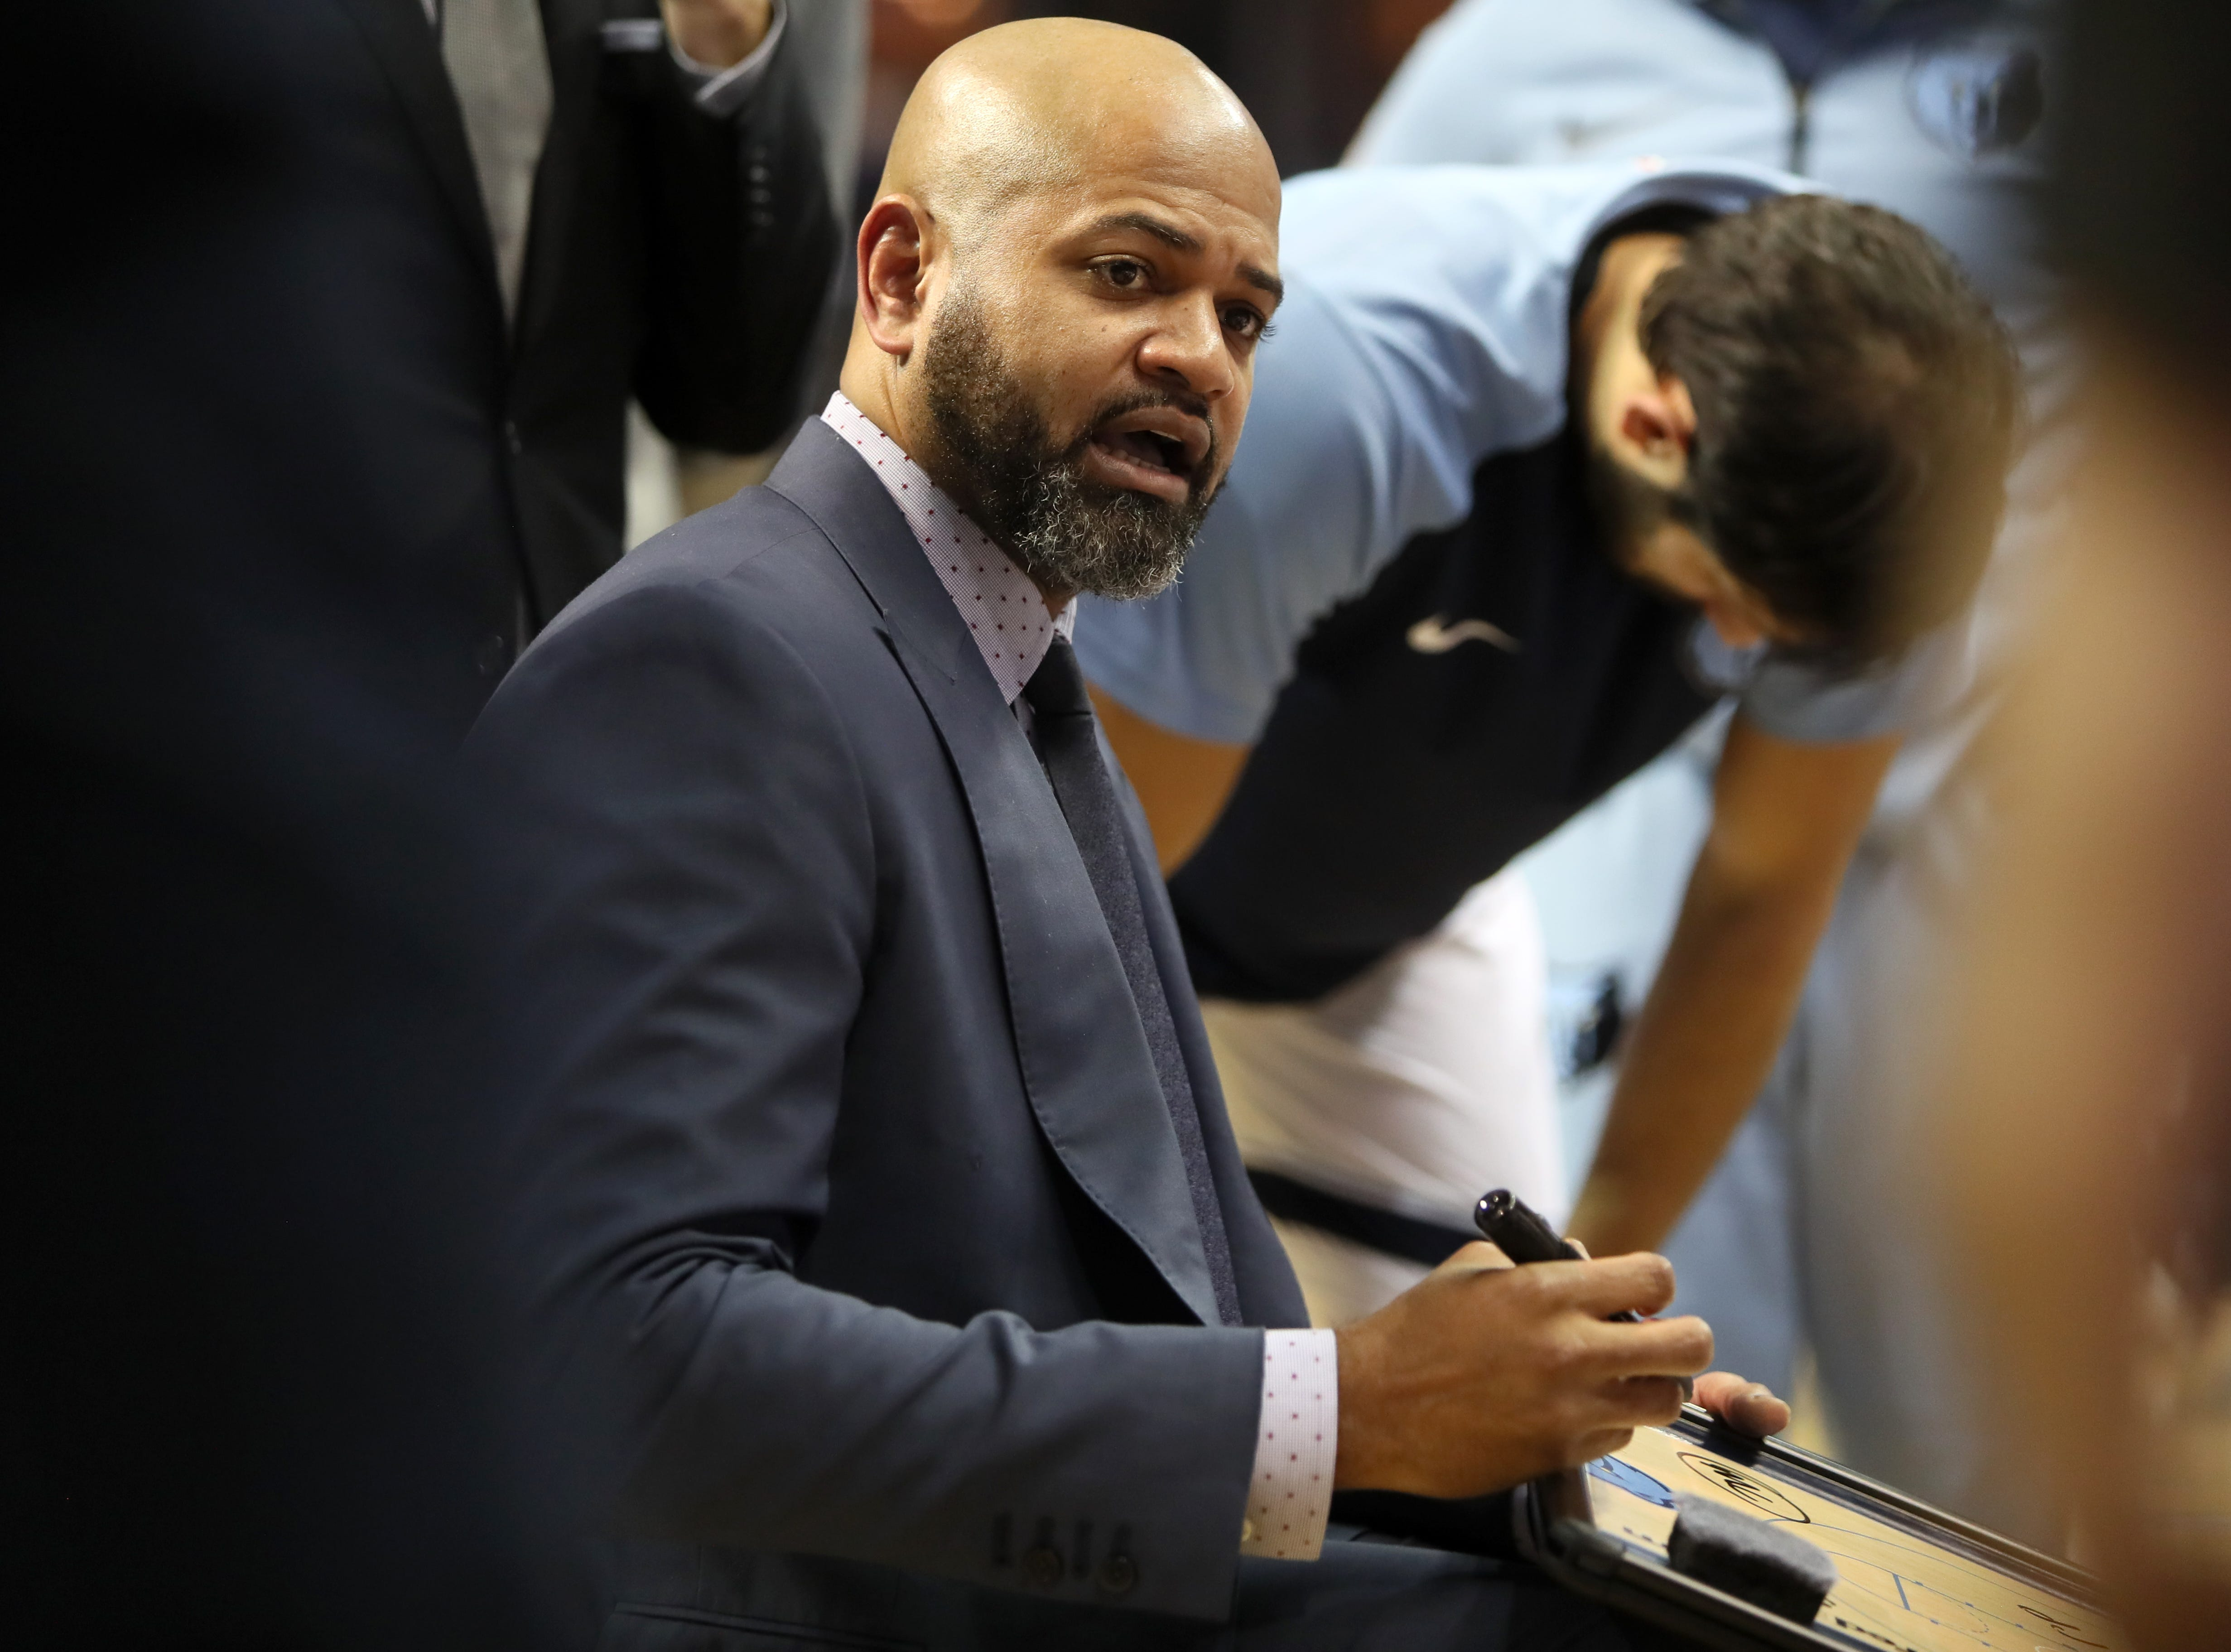 Memphis Grizzlies Head Coach J.B. Bickerstaff draws up a play in the huddle during their game against the Los Angeles Lakers at the FedExForum on Saturday, Dec. 8, 2018.